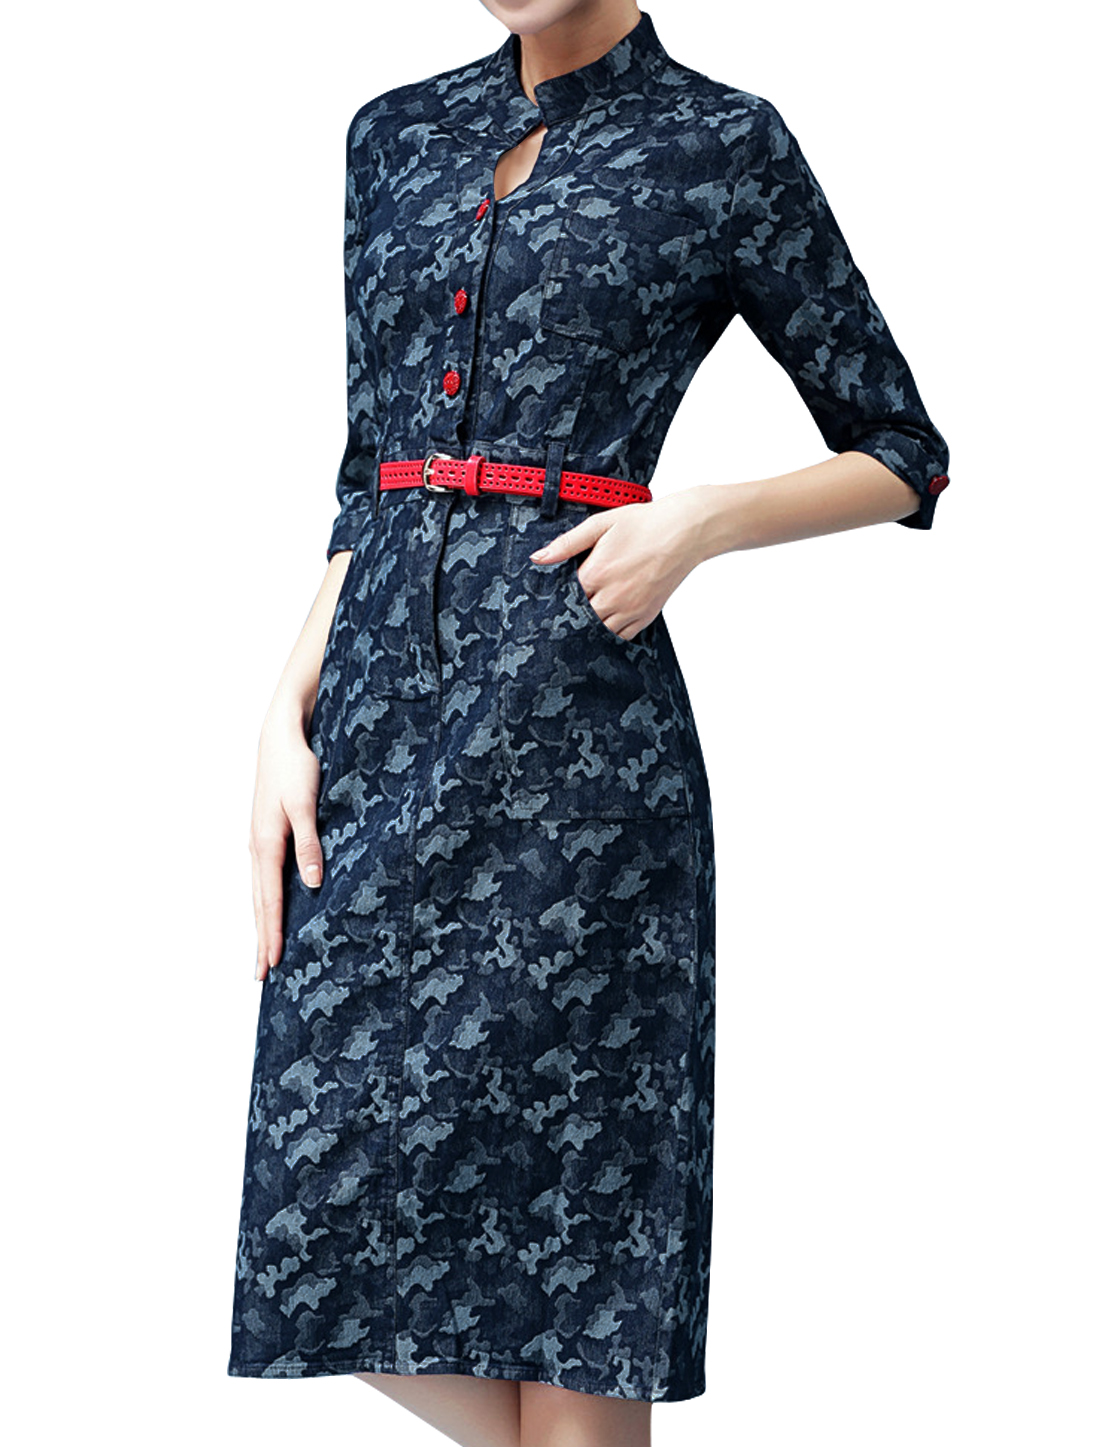 Women 3/4 Sleeves Novelty Prints Button Closure Denim Midi Dress w Belt Blue M